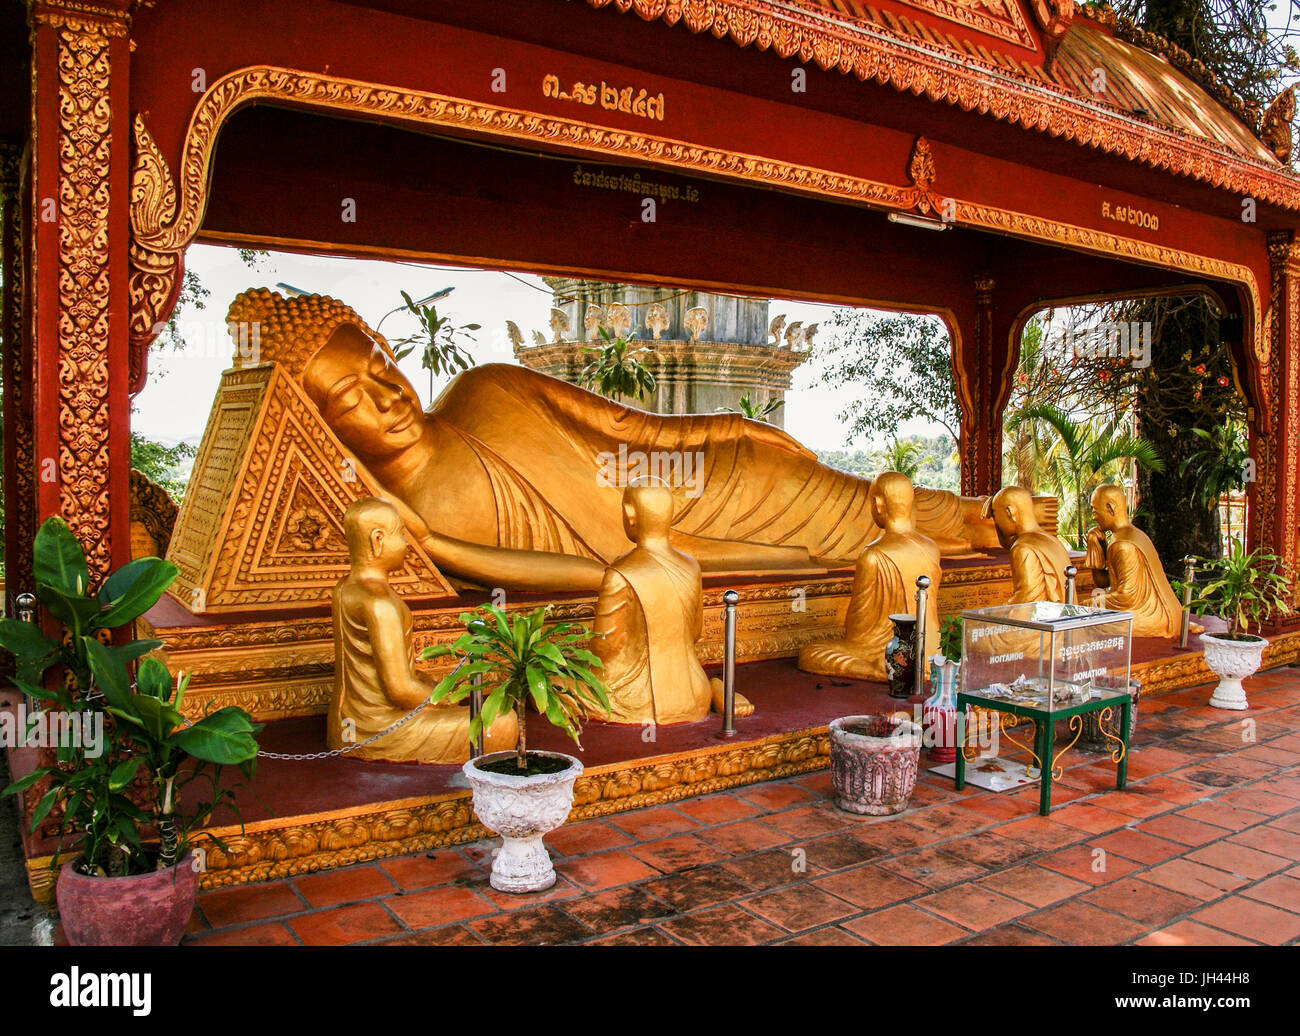 The golden statue of Buddha at Wat Krom. Known as the Sleeping Buddha or the Reclining Buddha with five seated statues - Stock Image